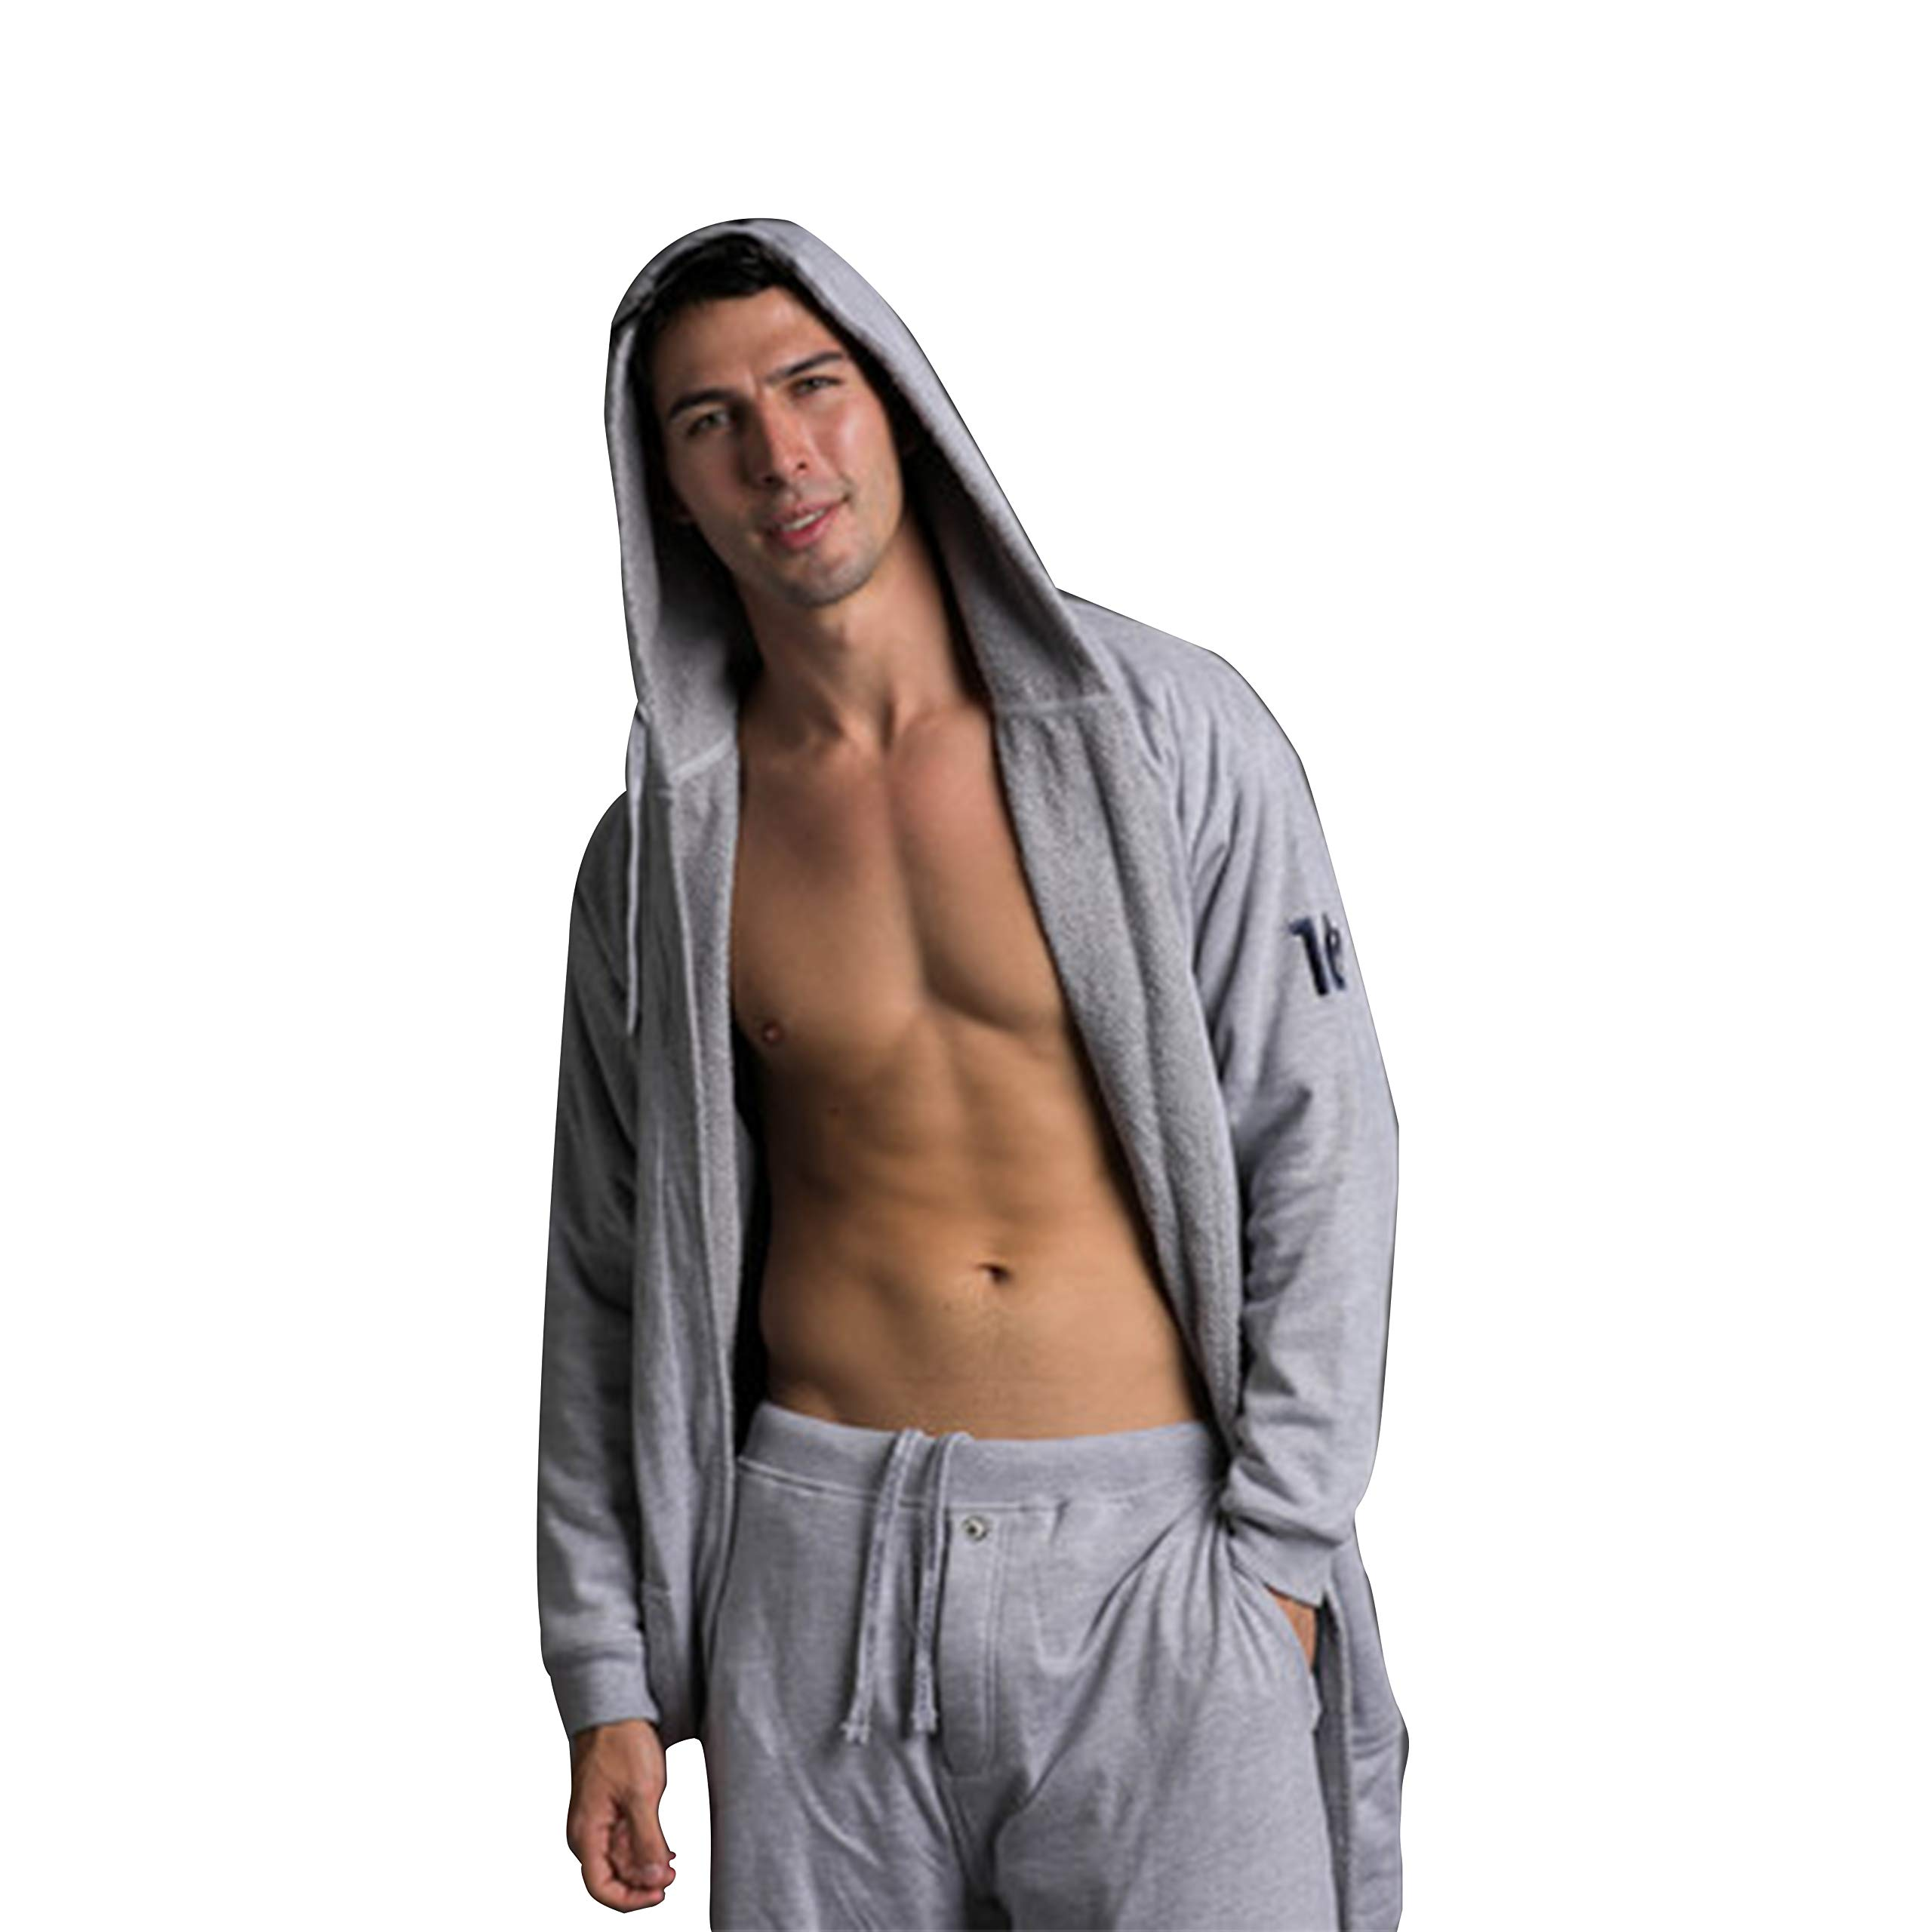 DudeRobe Men's Hooded Towel-Lined Bathrobe, Super Absorbent Luxury Robe for Men, L/XL, Grey